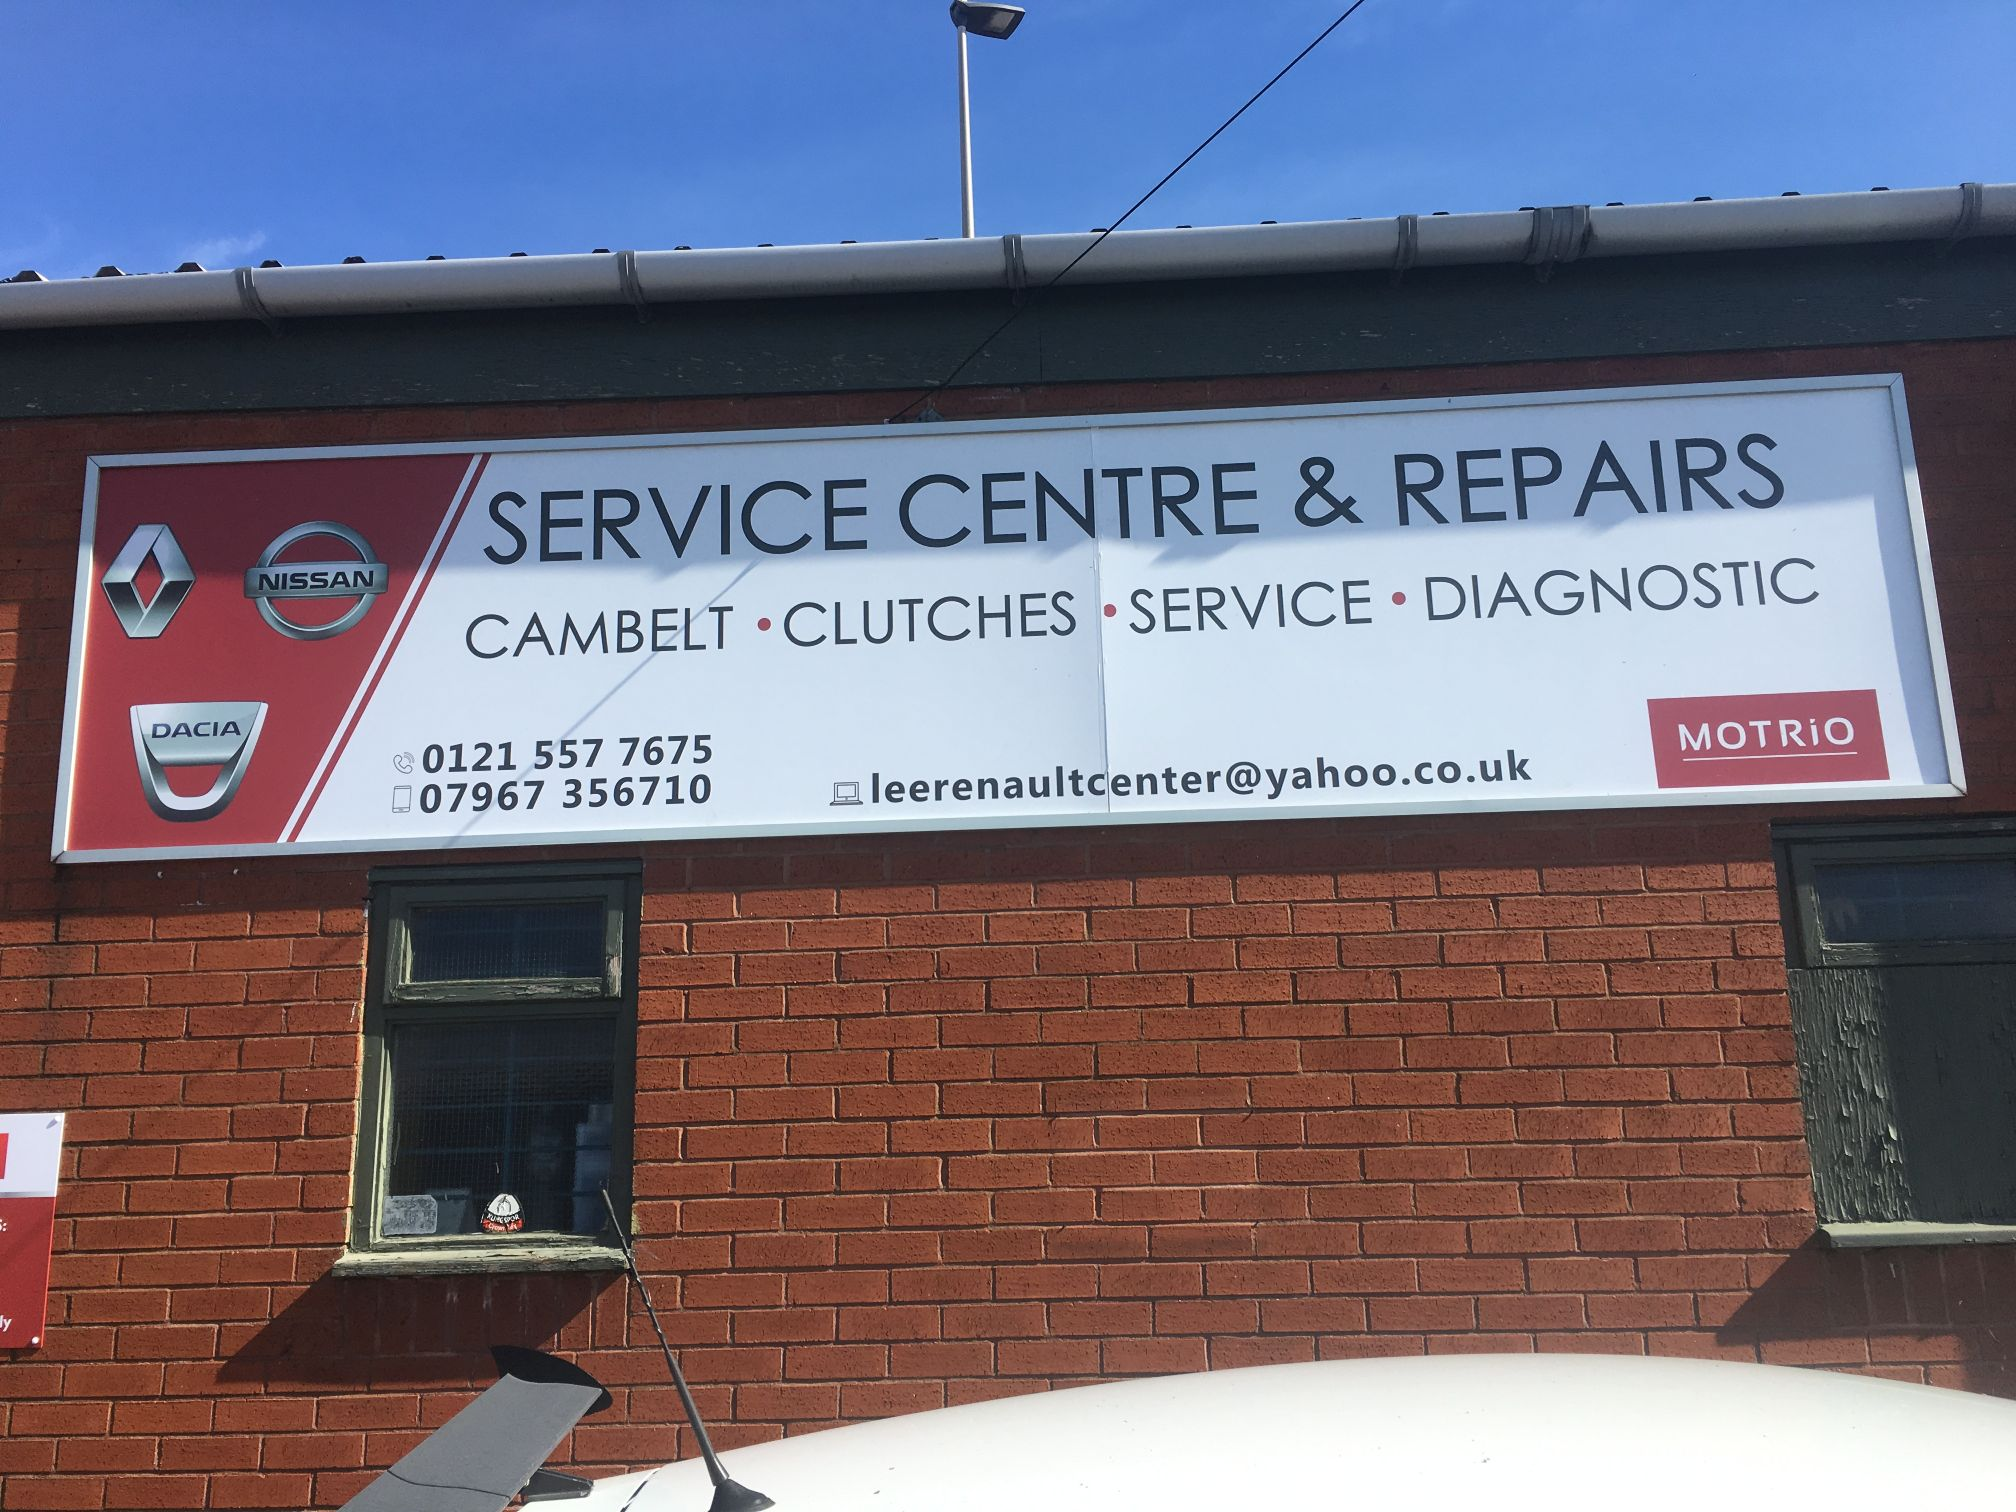 Main photo for Service Centre & Repairs